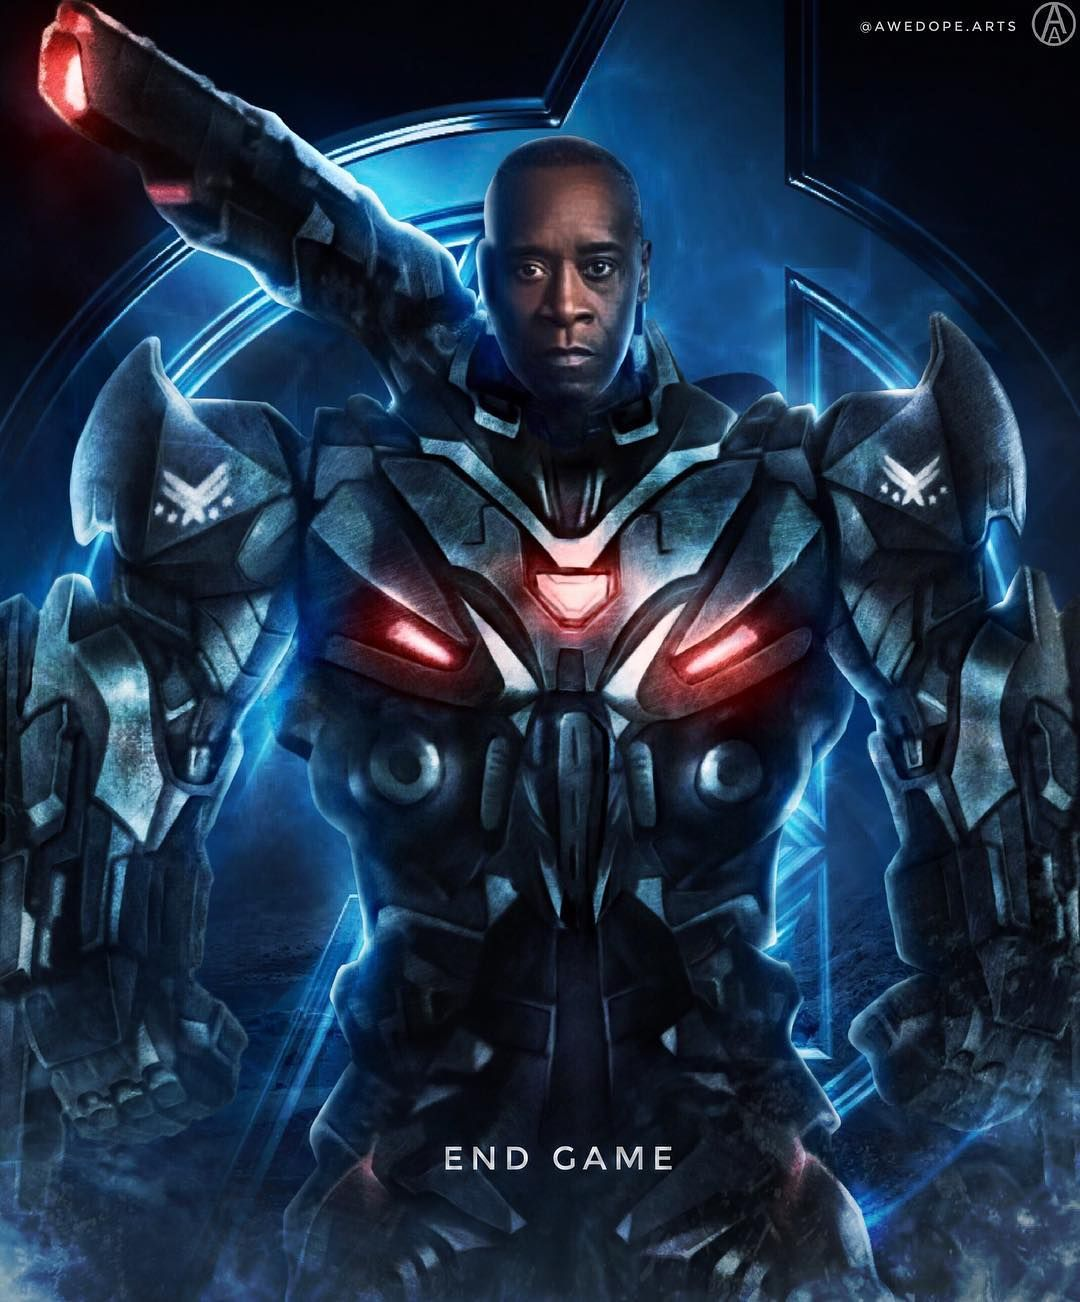 WAR MACHINE Day 3 Of My Avengers End Game Series Cant Wait